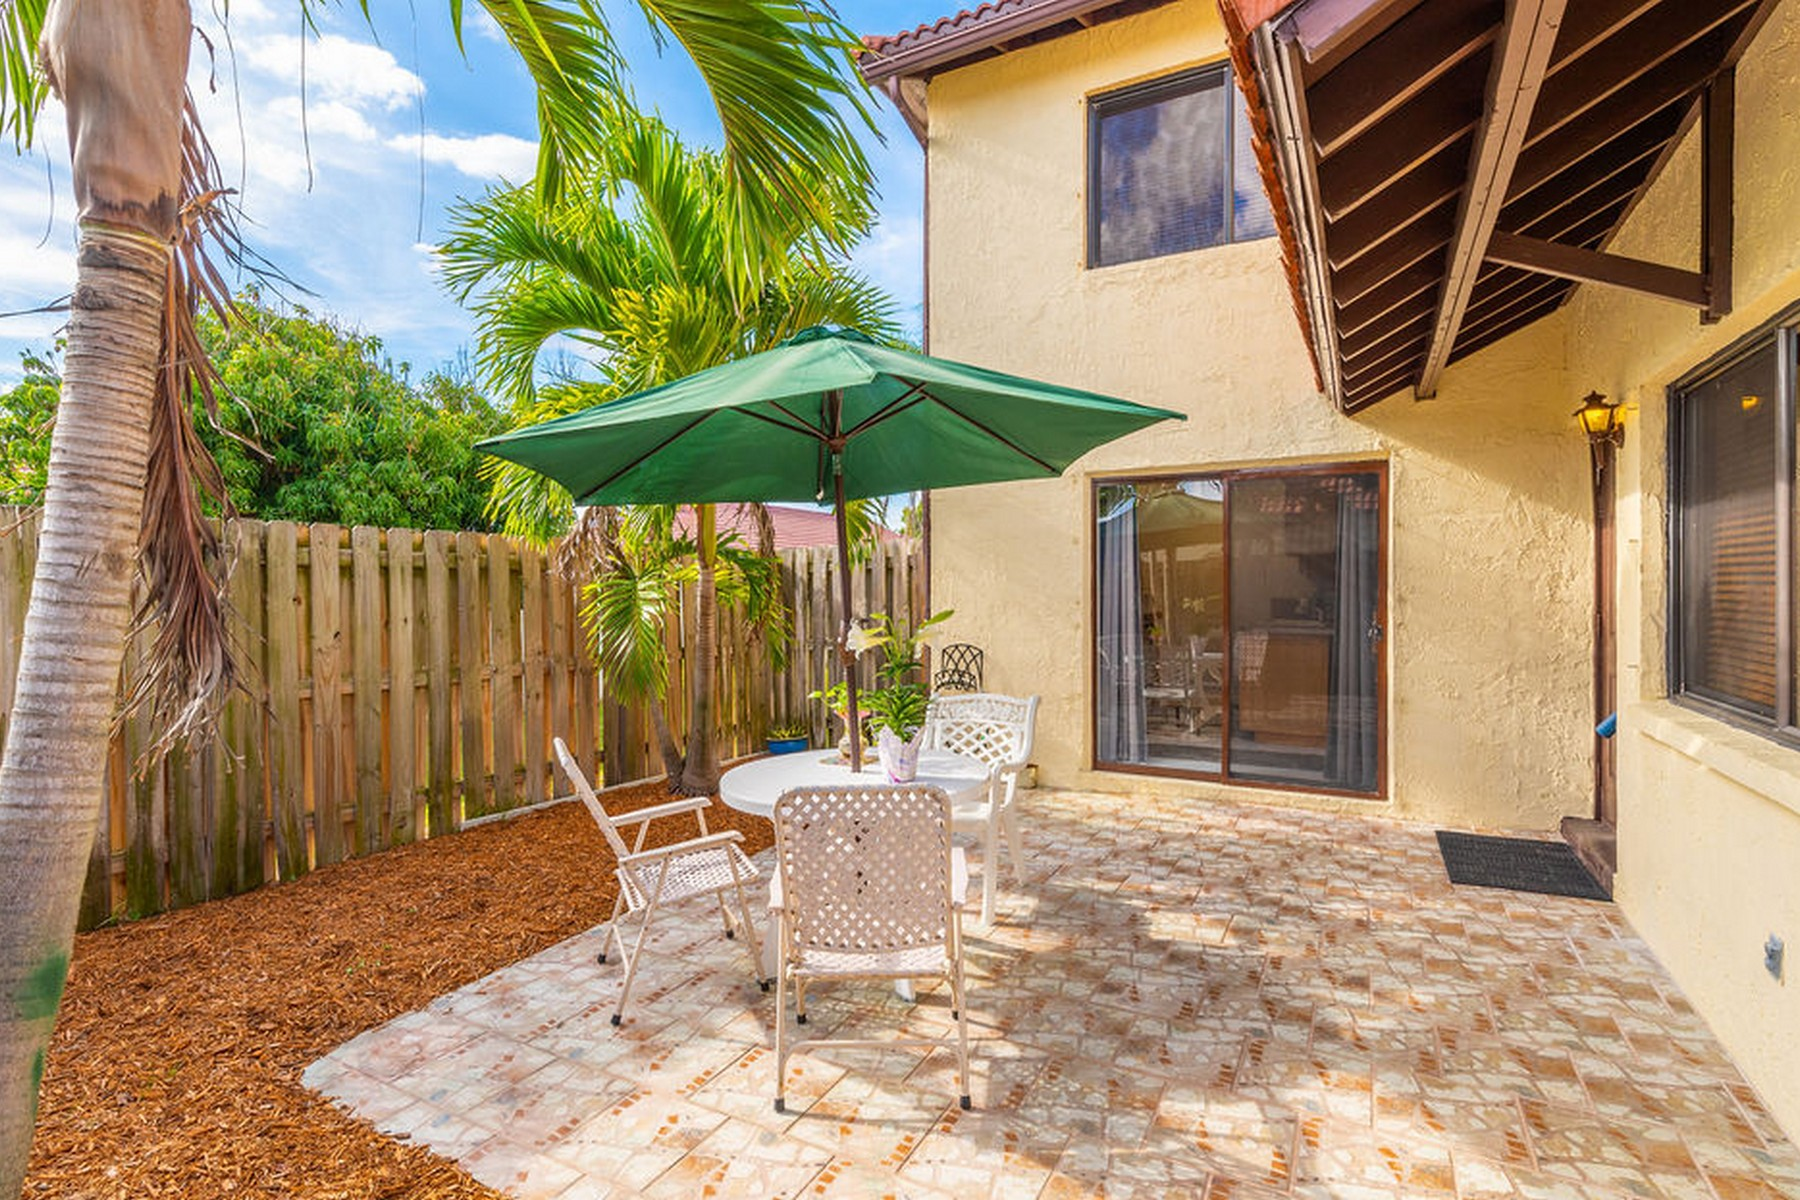 Townhome in River to Ocean Community 3186 Beach Winds Ct Melbourne Beach, Florida 32951 Hoa Kỳ